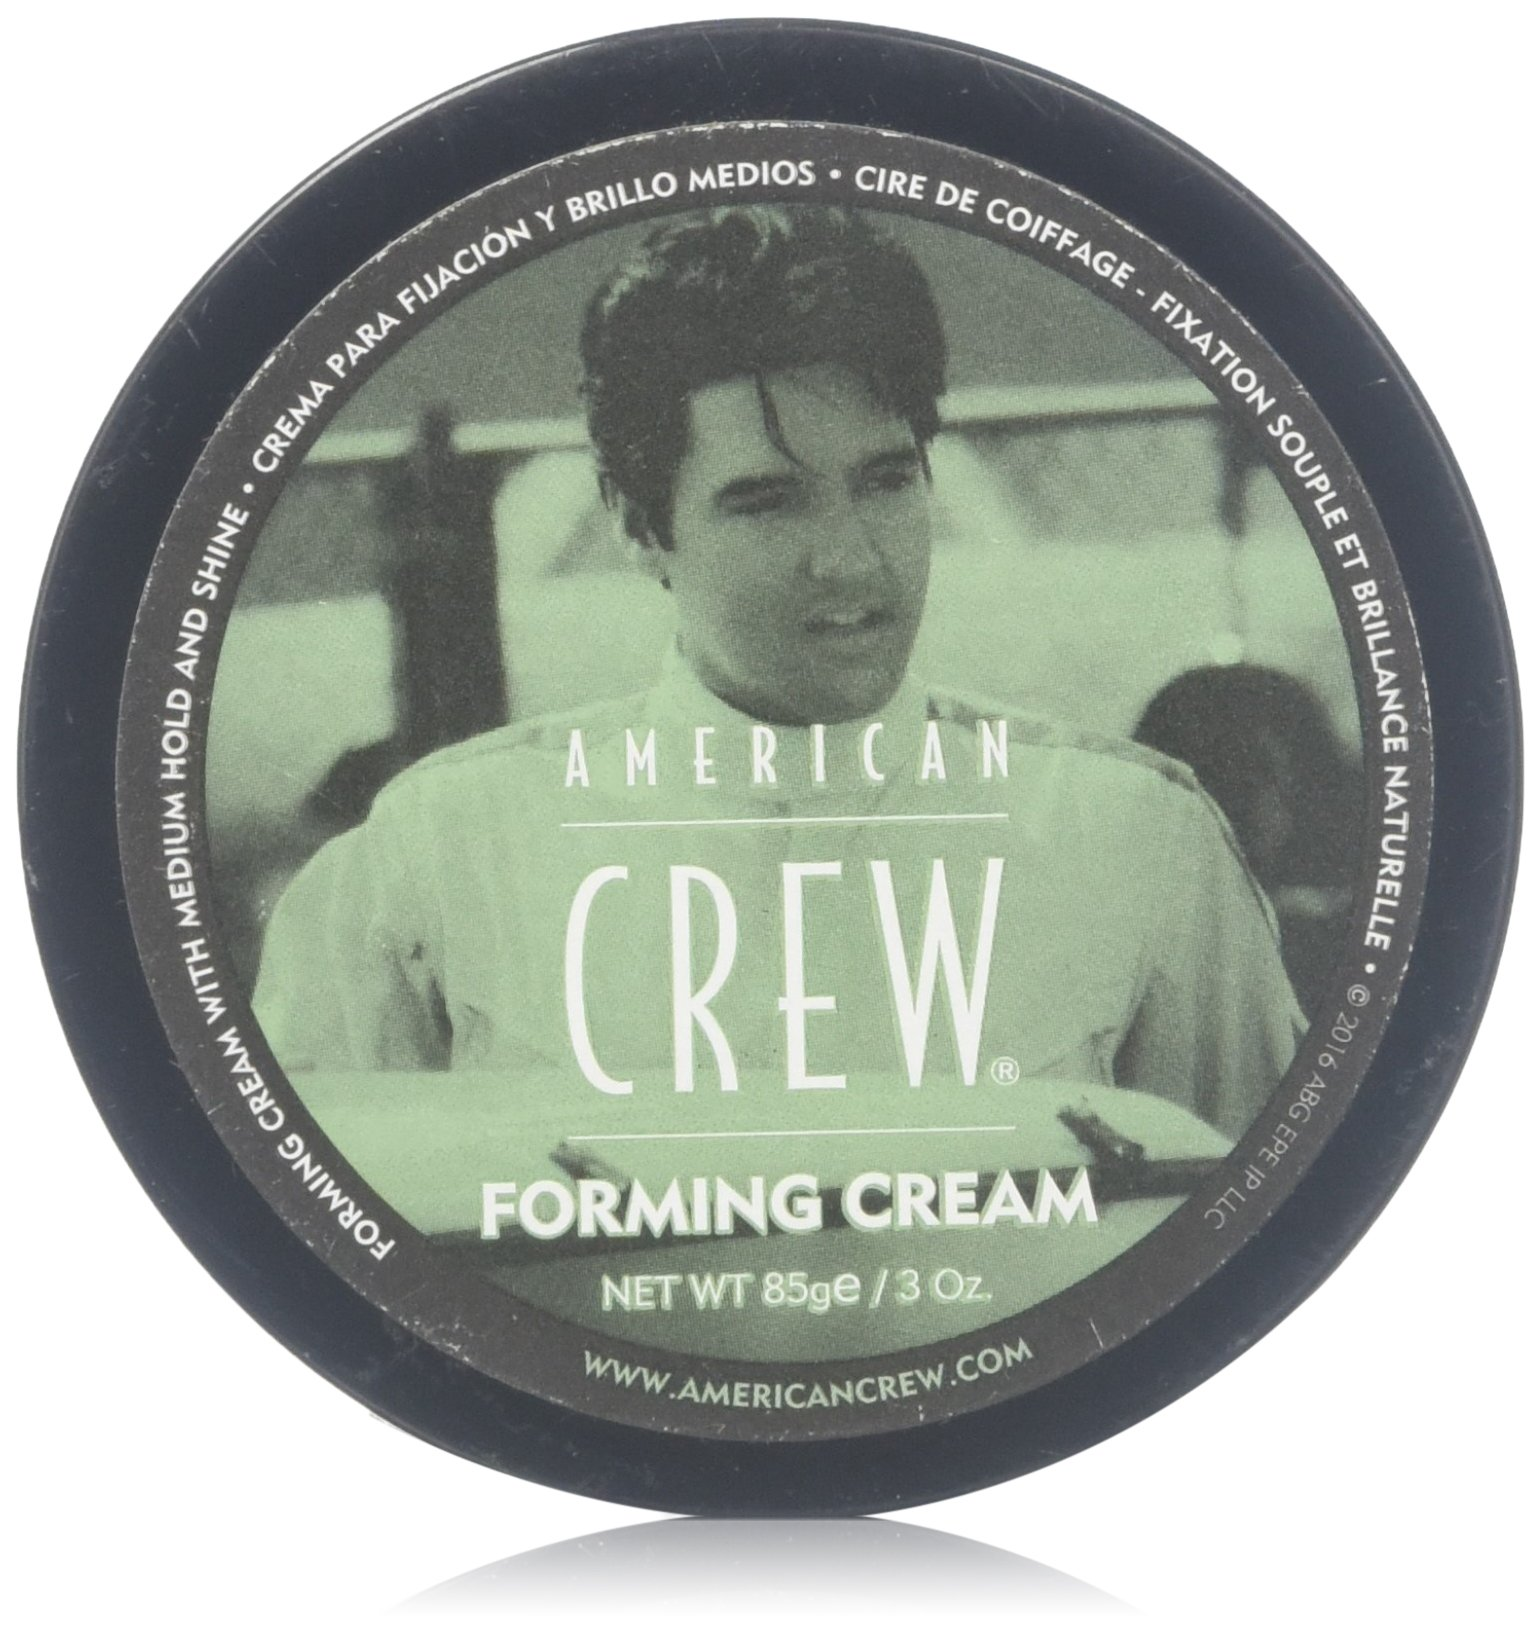 American Crew Forming Cream, 3 Ounce (Pack of 4) by AMERICAN CREW